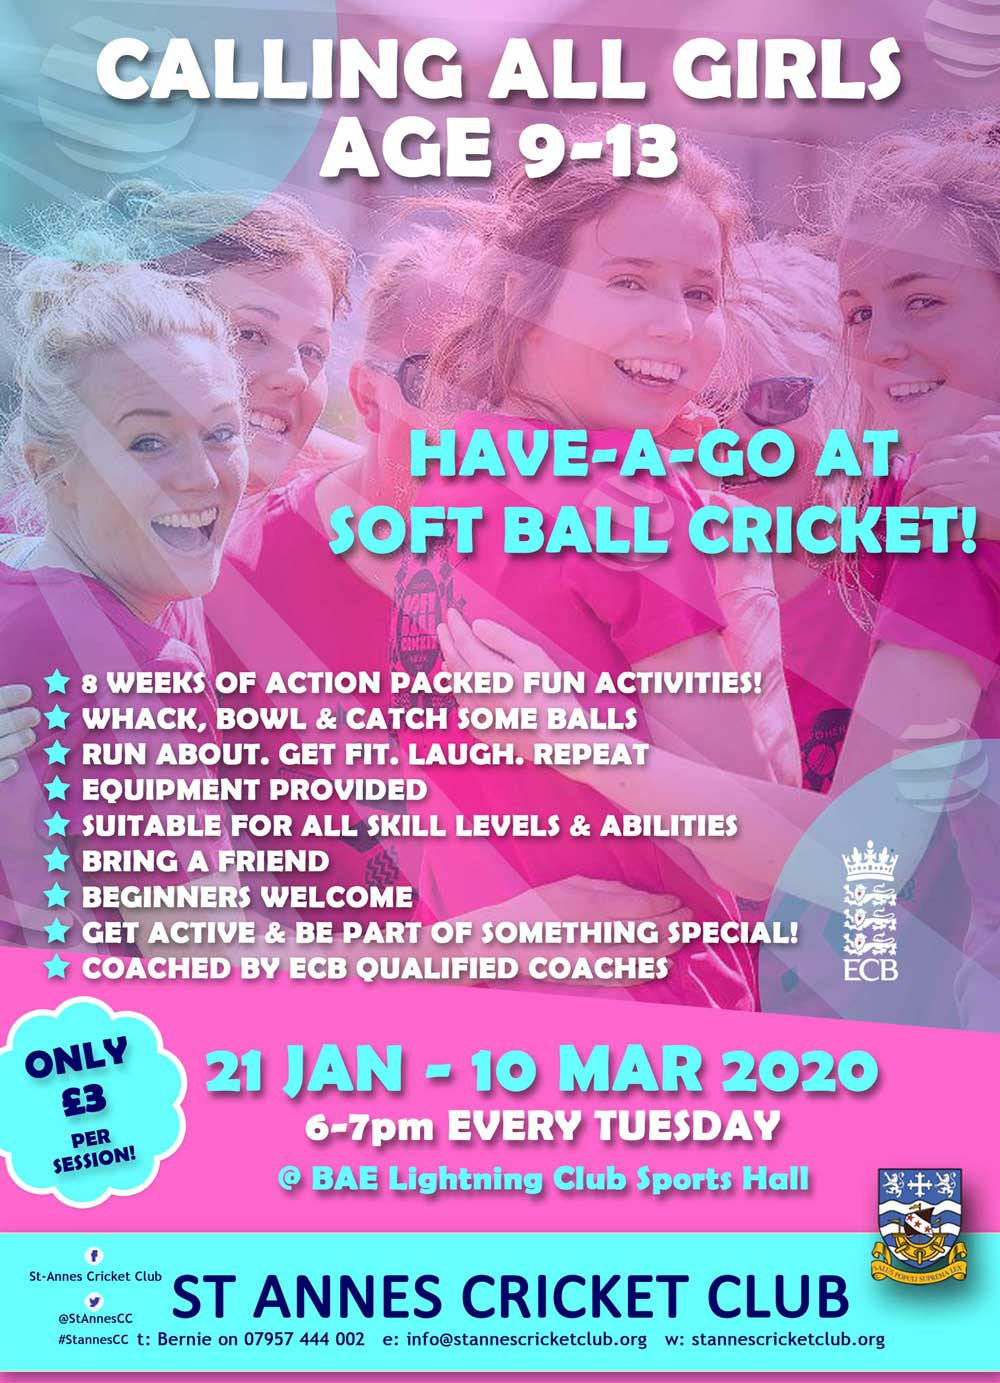 Fantastic Soft Ball Cricket activity for girls age 9-13 at St Annes CC